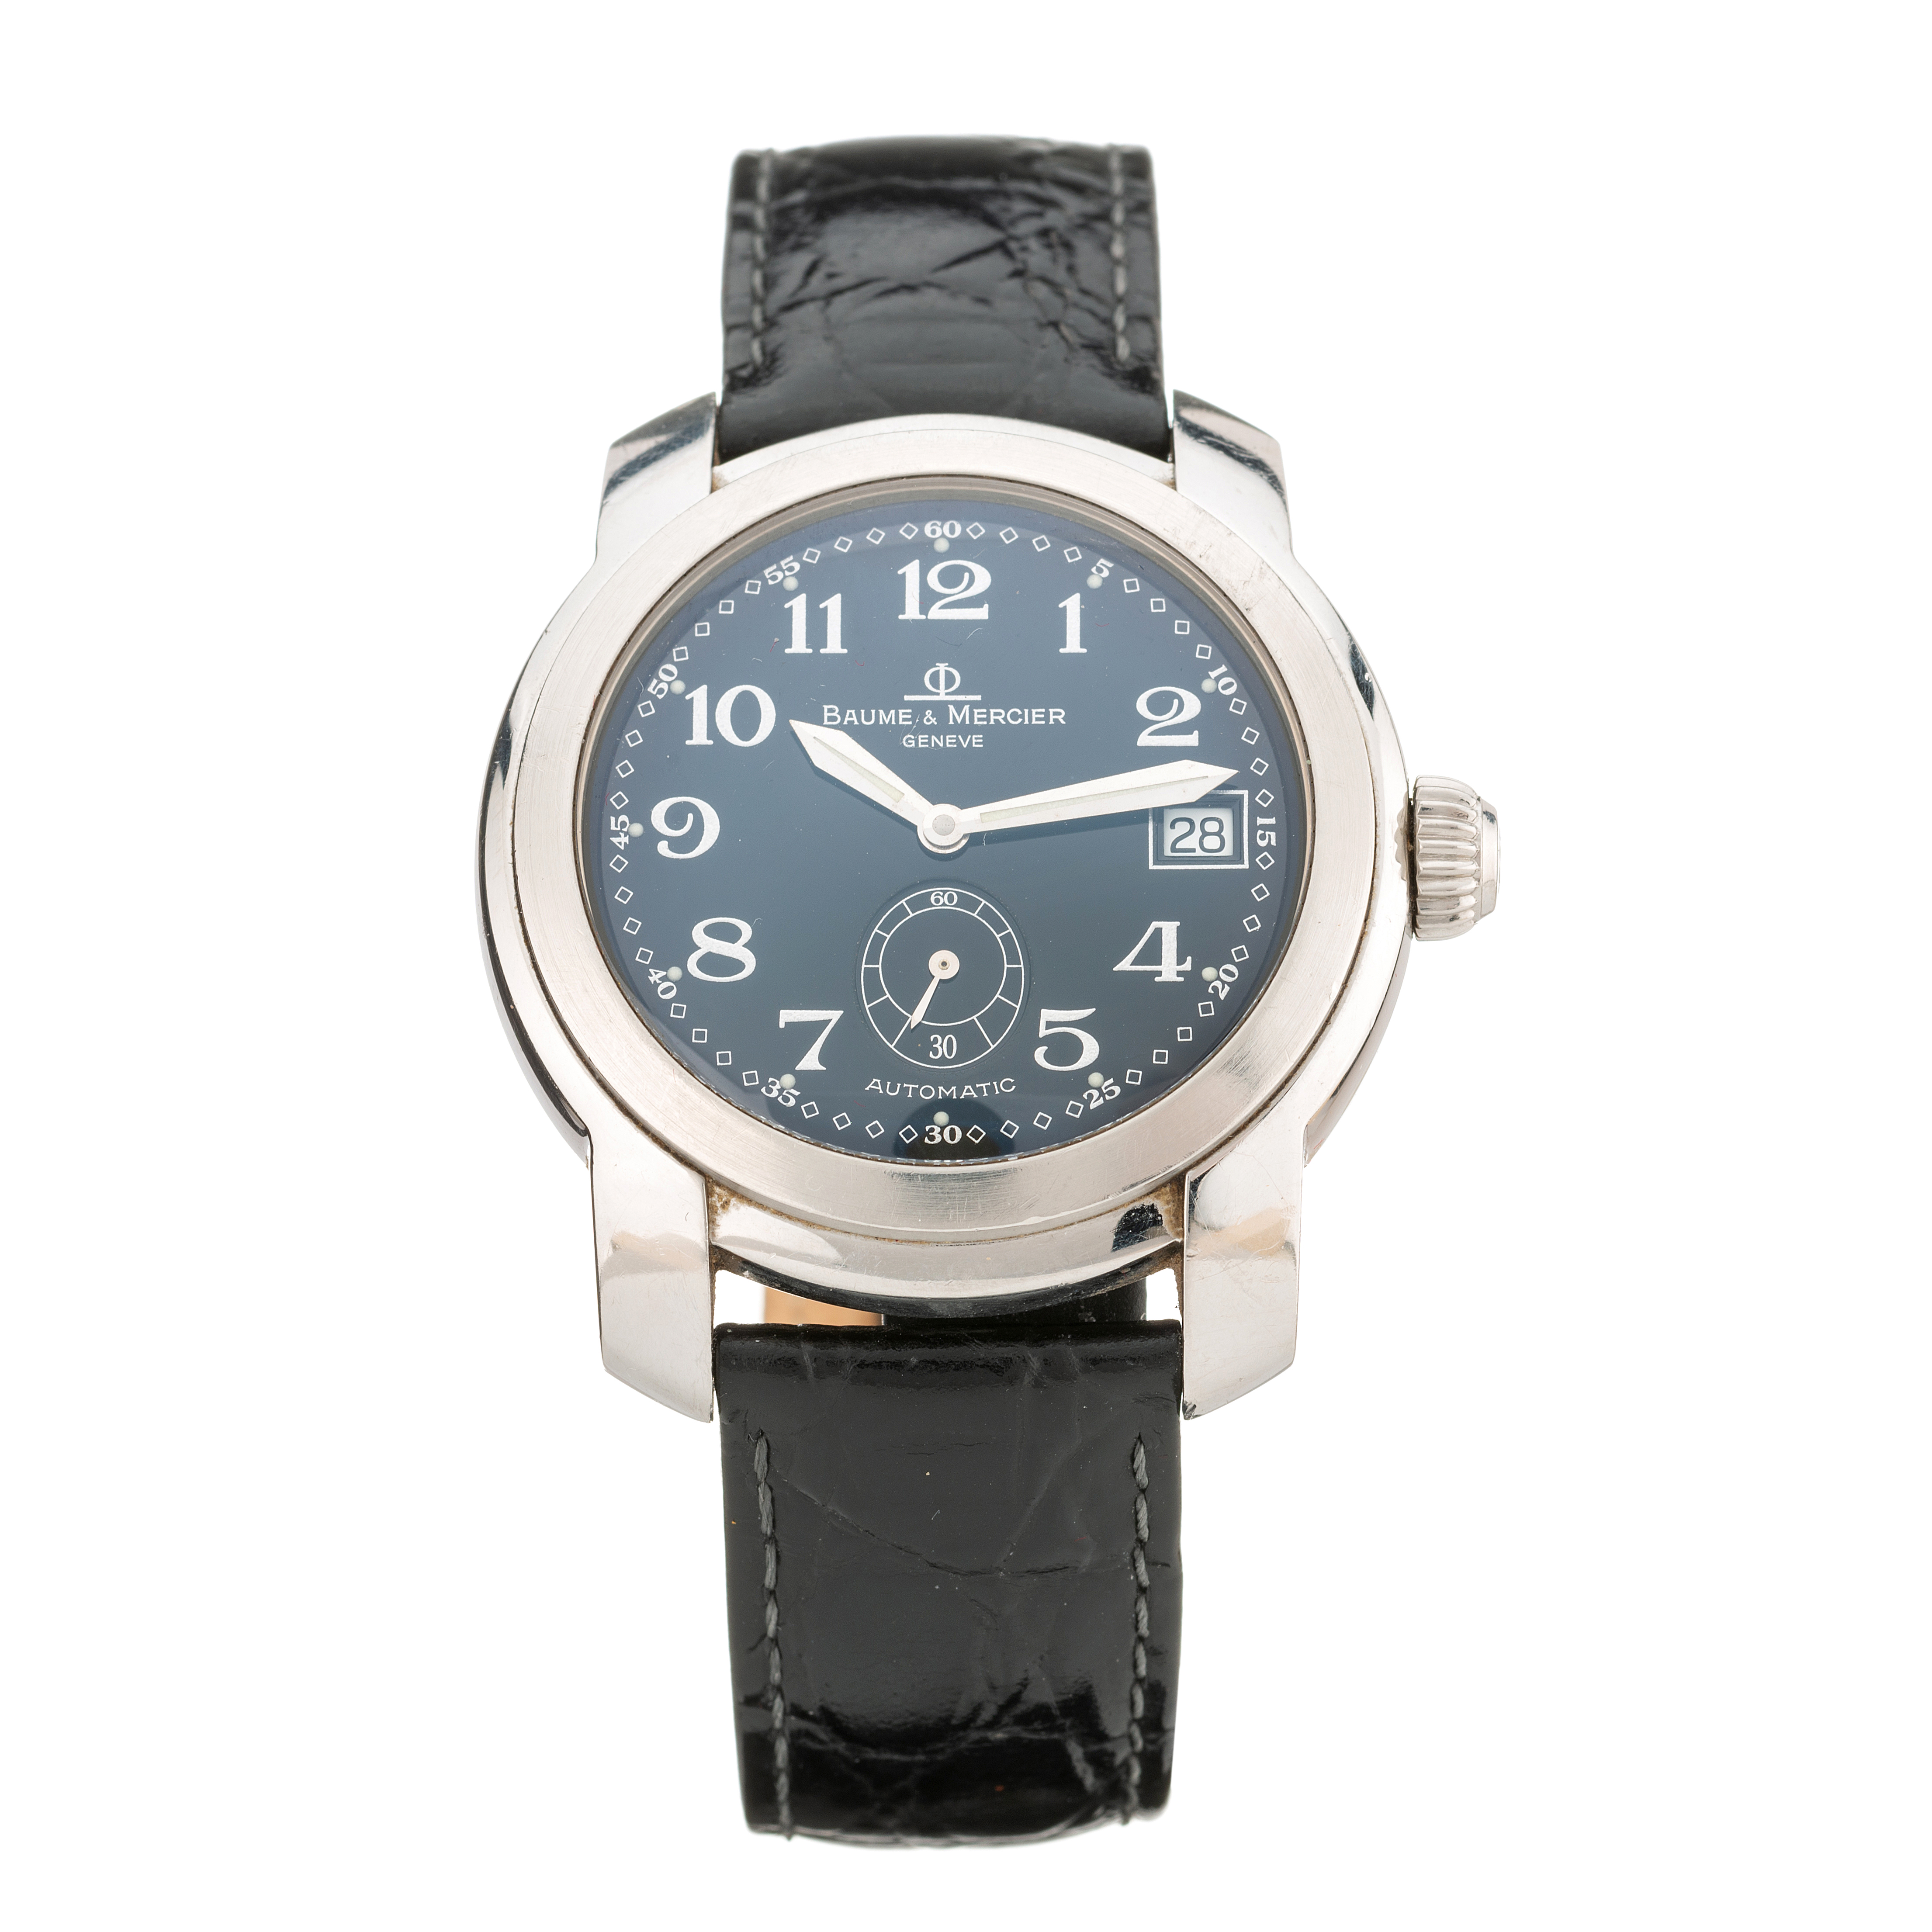 Baume & Mercier, a stainless steel Capeland automatic wrist watch